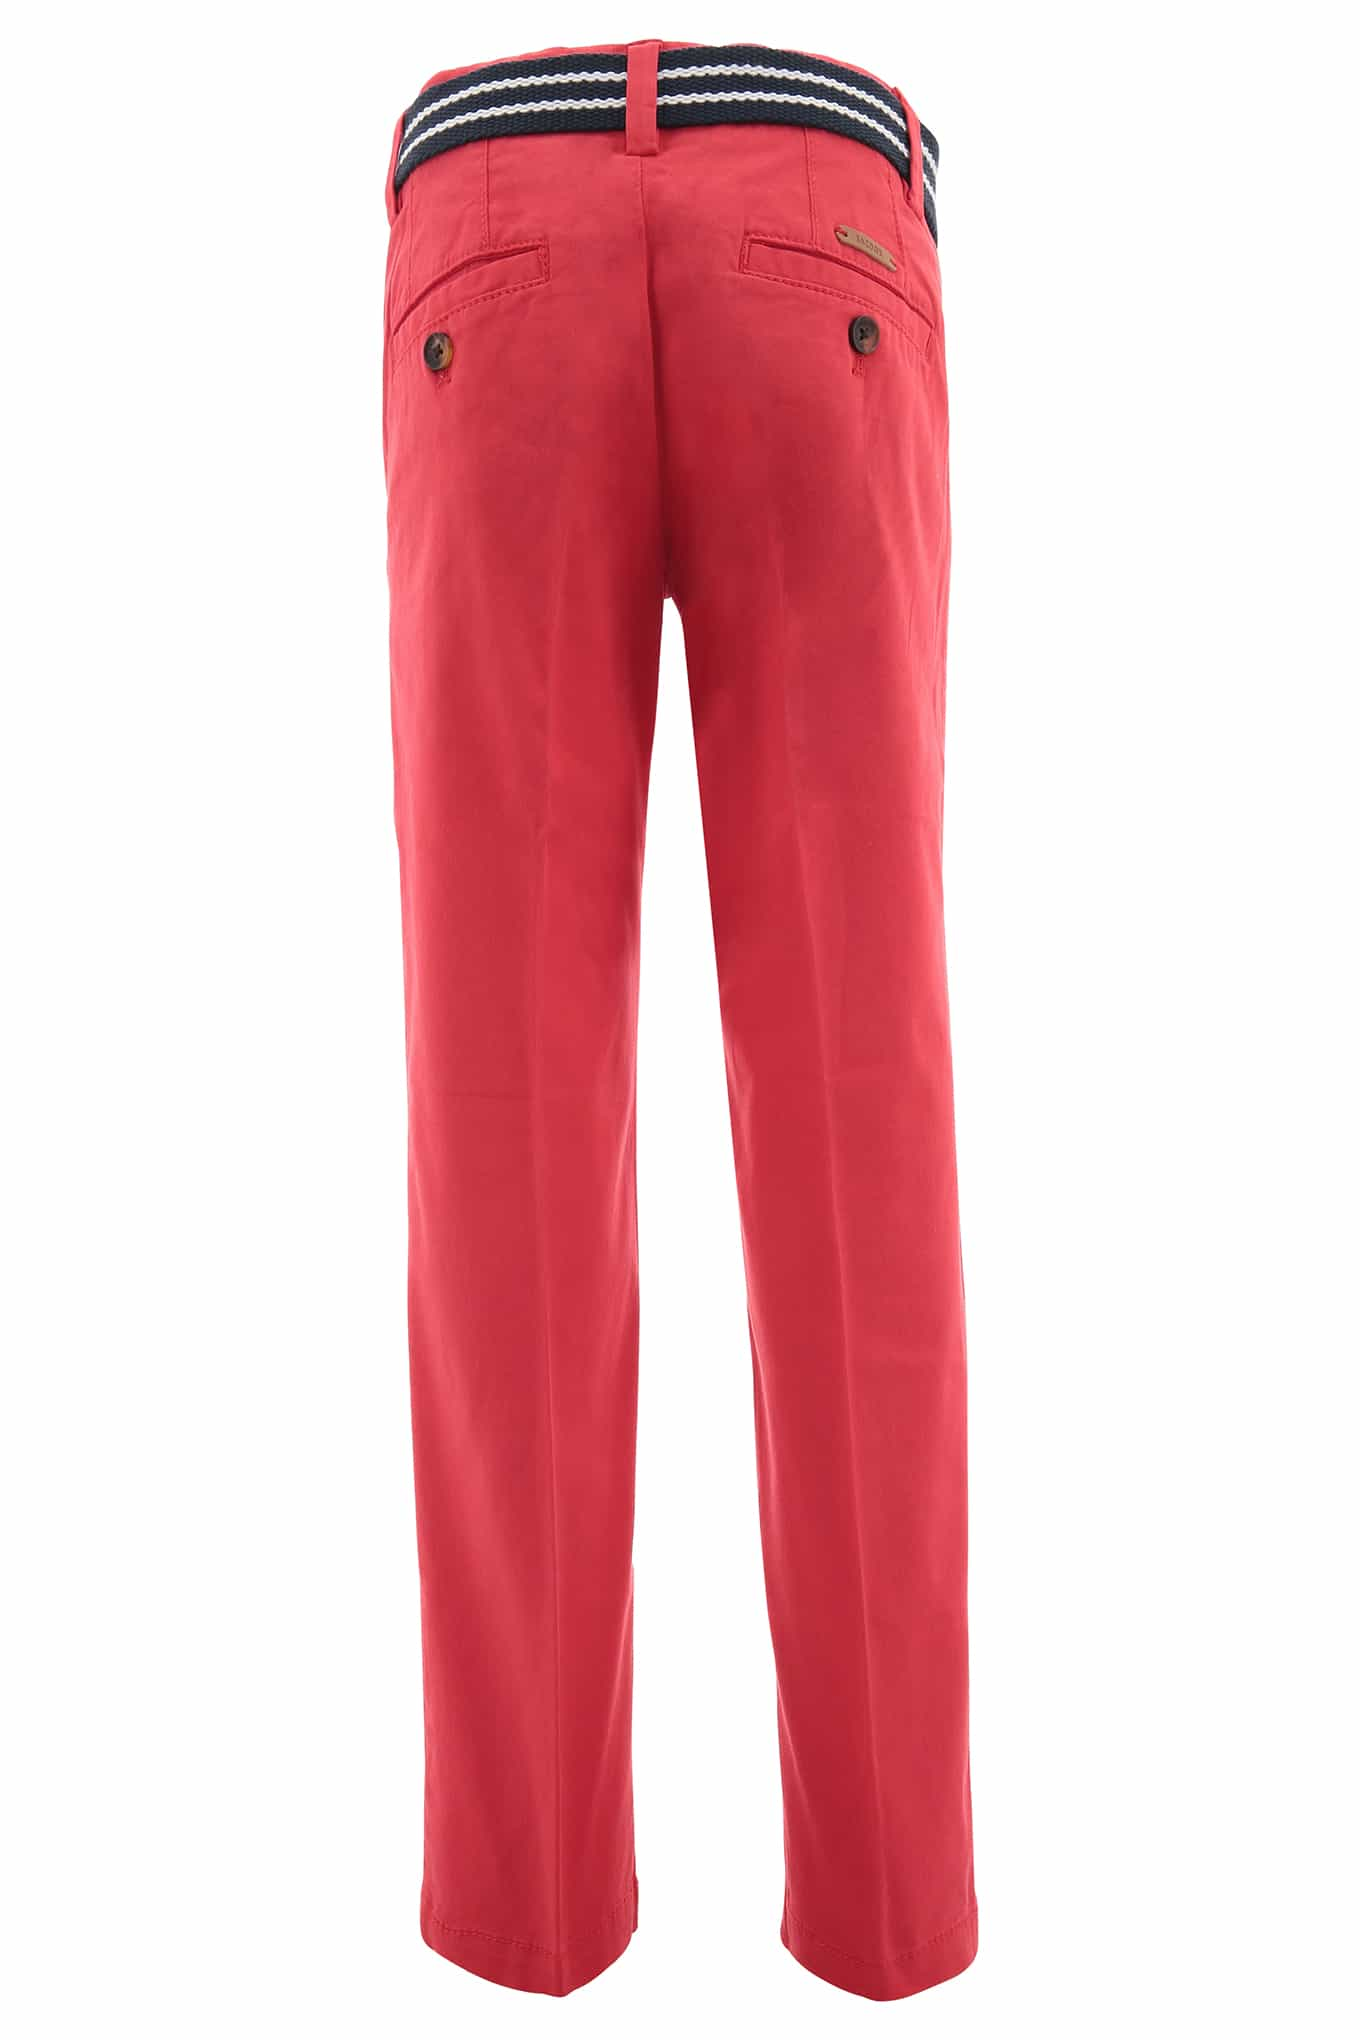 Chino Trousers Red Sport Boy